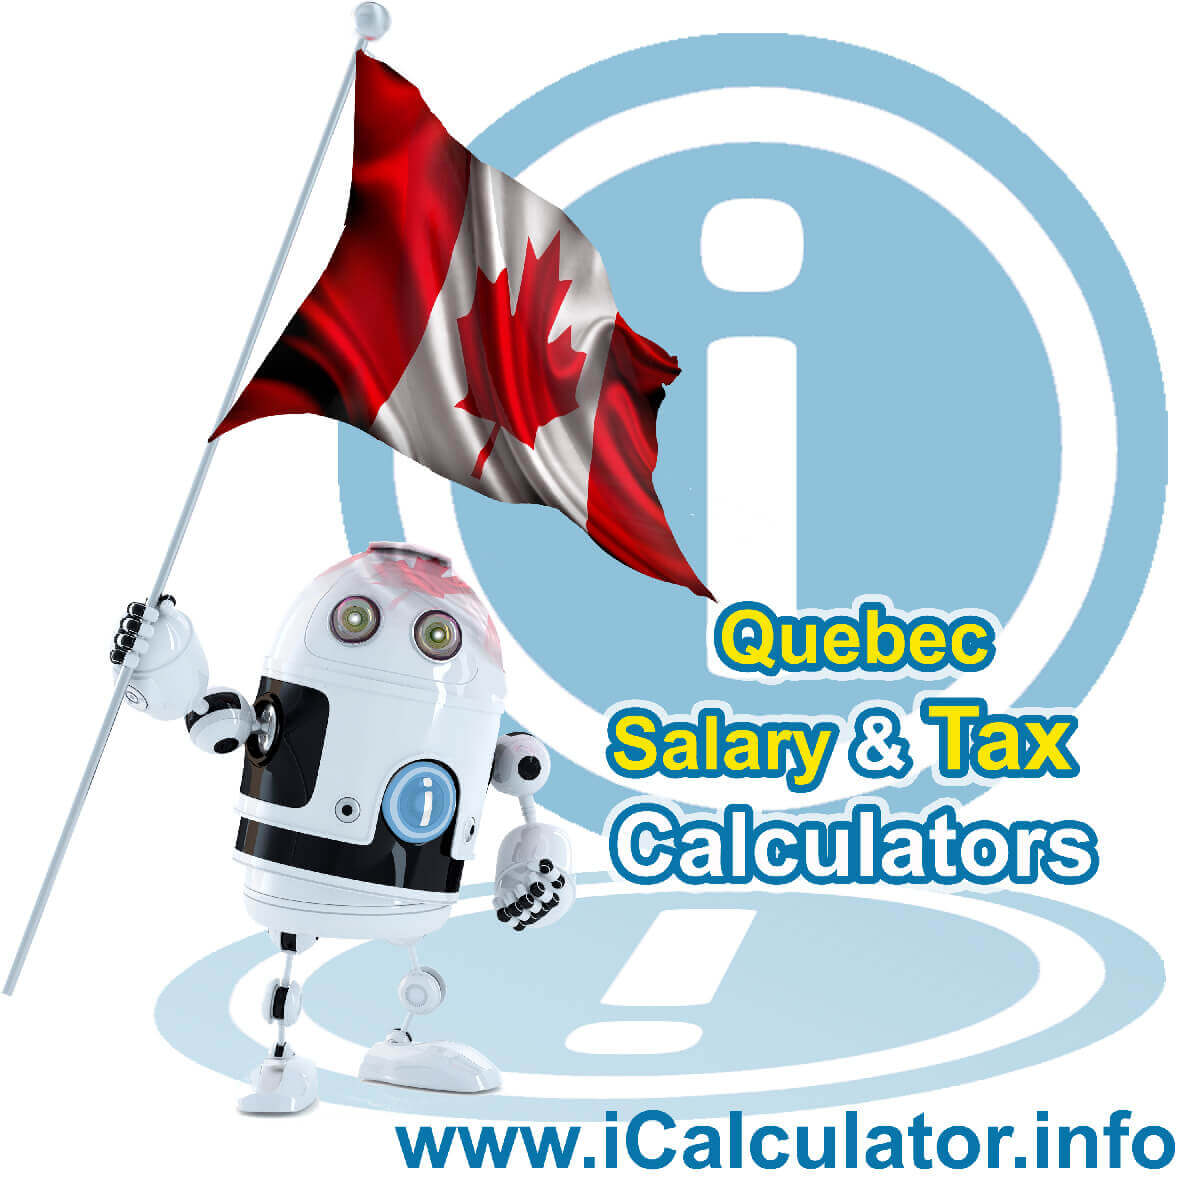 Quebec 2020 Salary Comparison Calculator. This image shows the Quebec flag and information relating to the tax formula used in the Quebec 2020 Salary Comparison Calculator